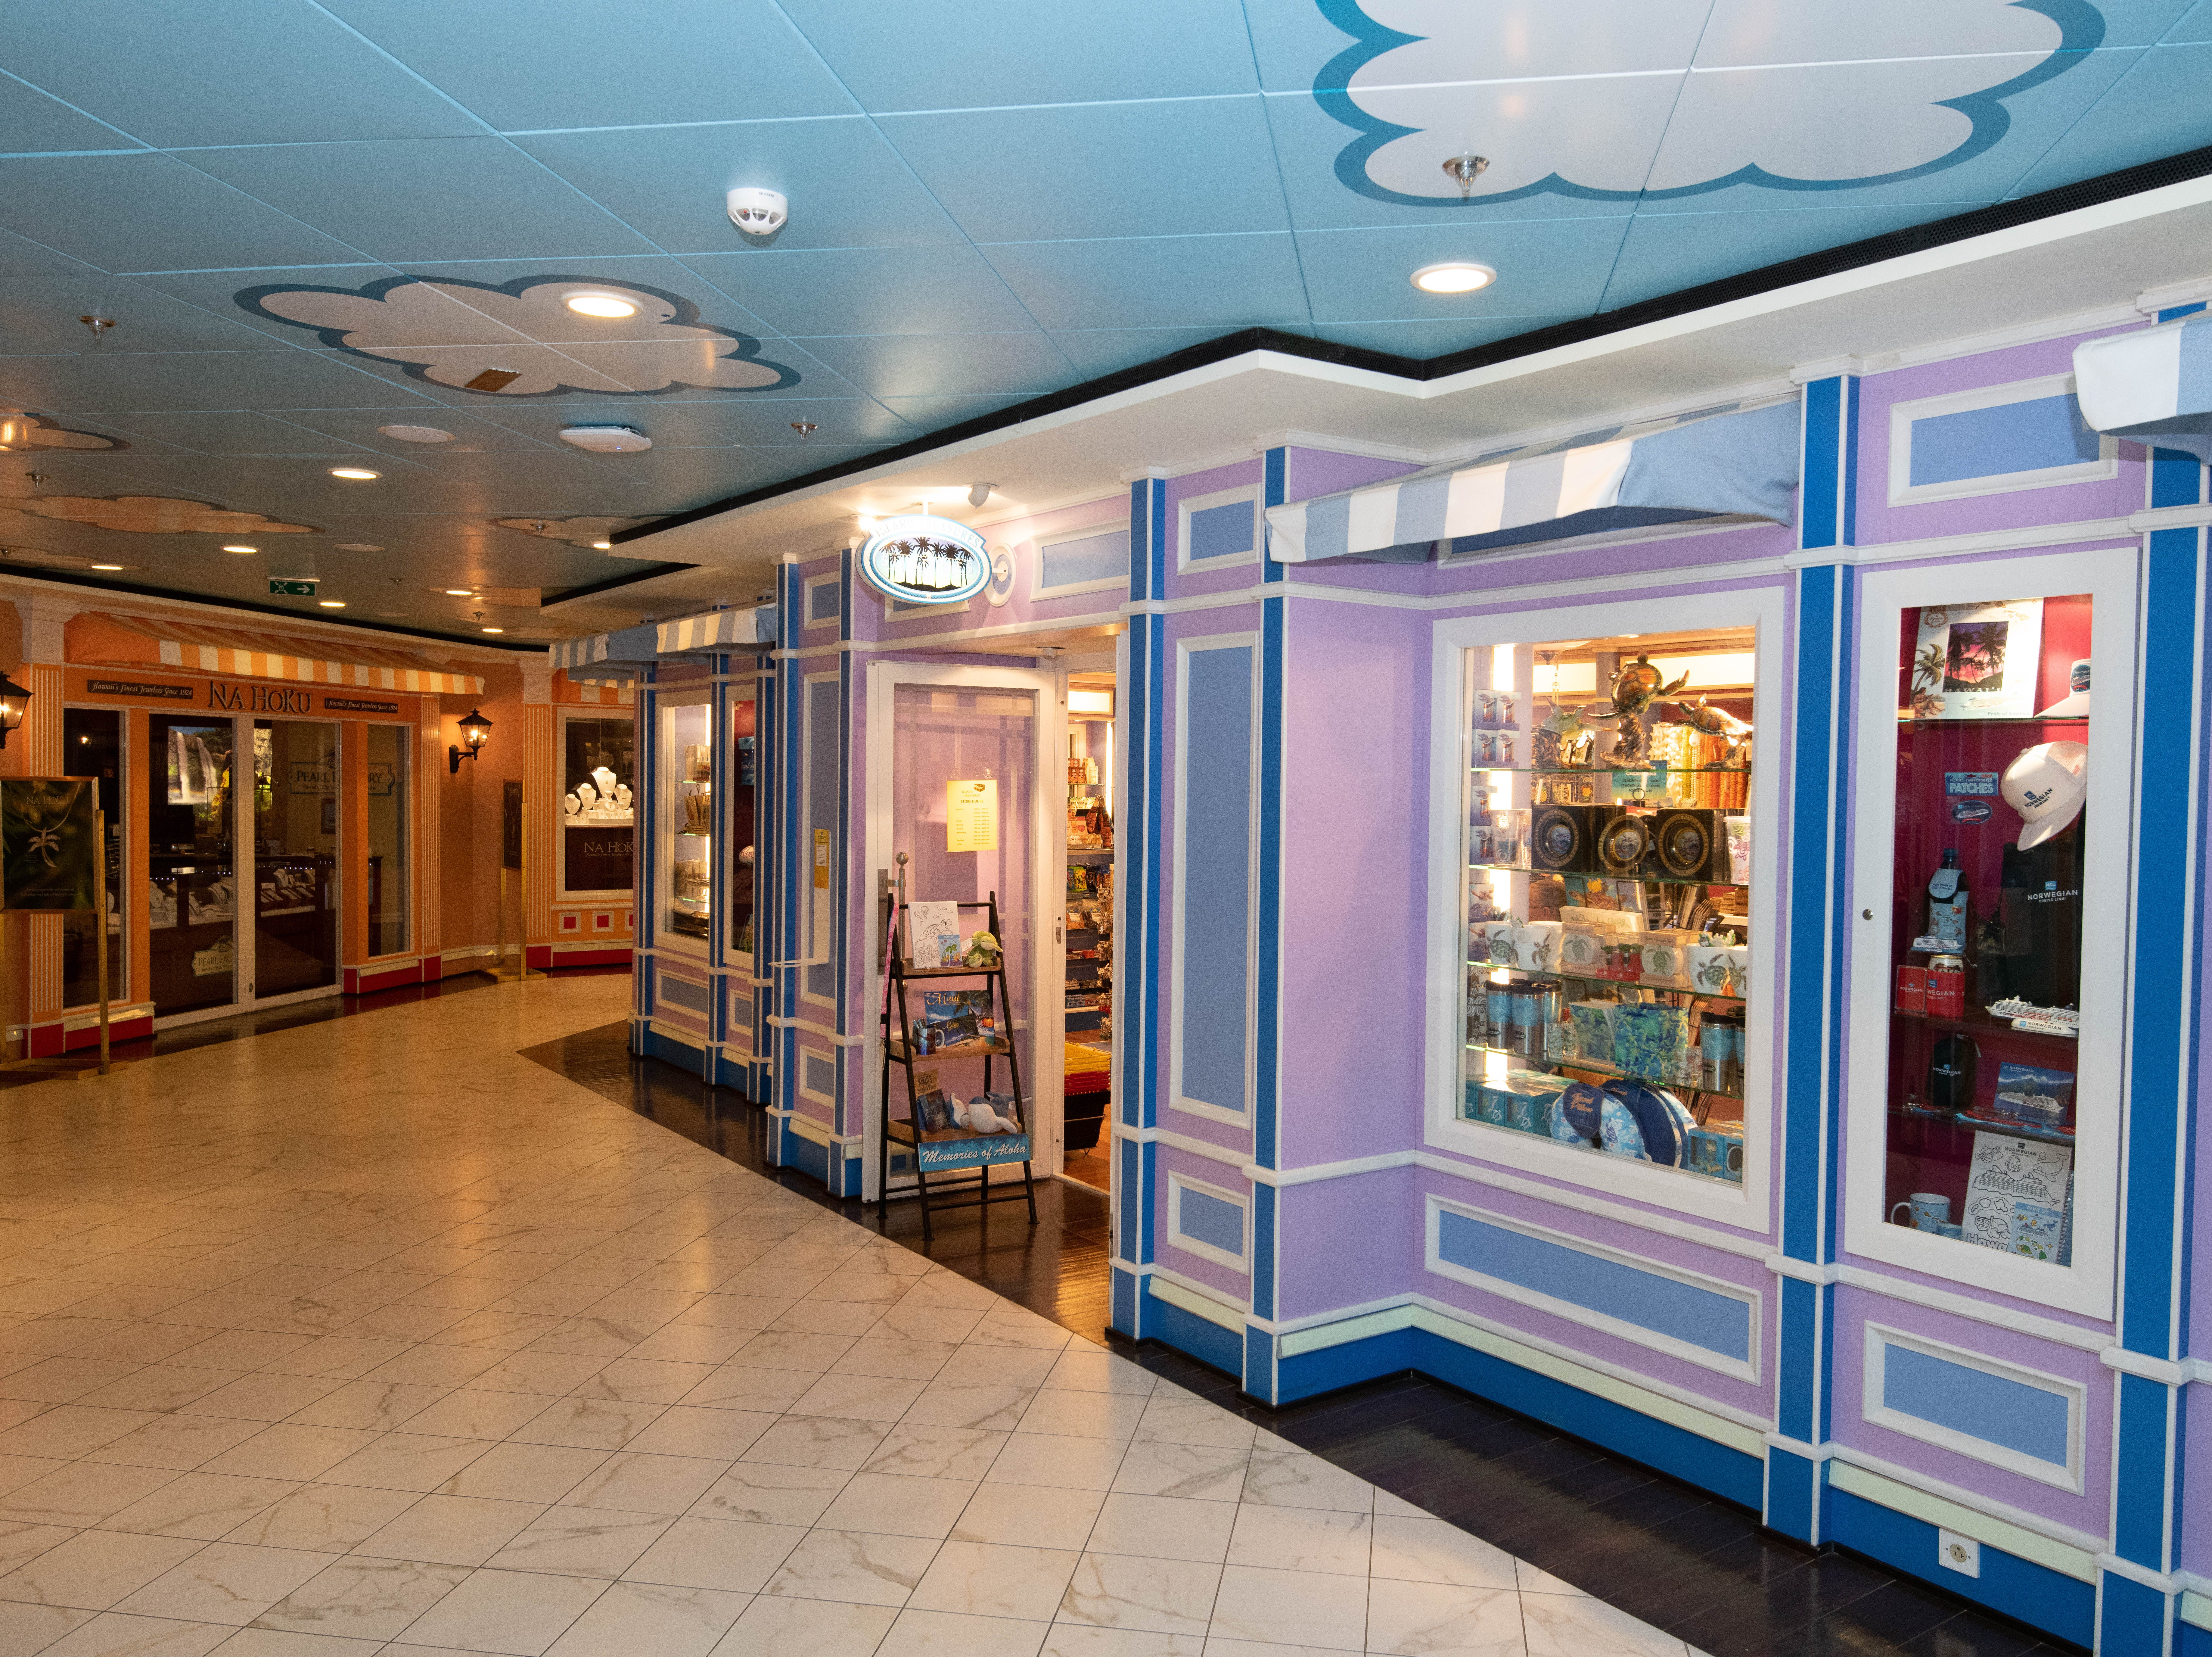 Also located on Deck 5 is a small shopping area.